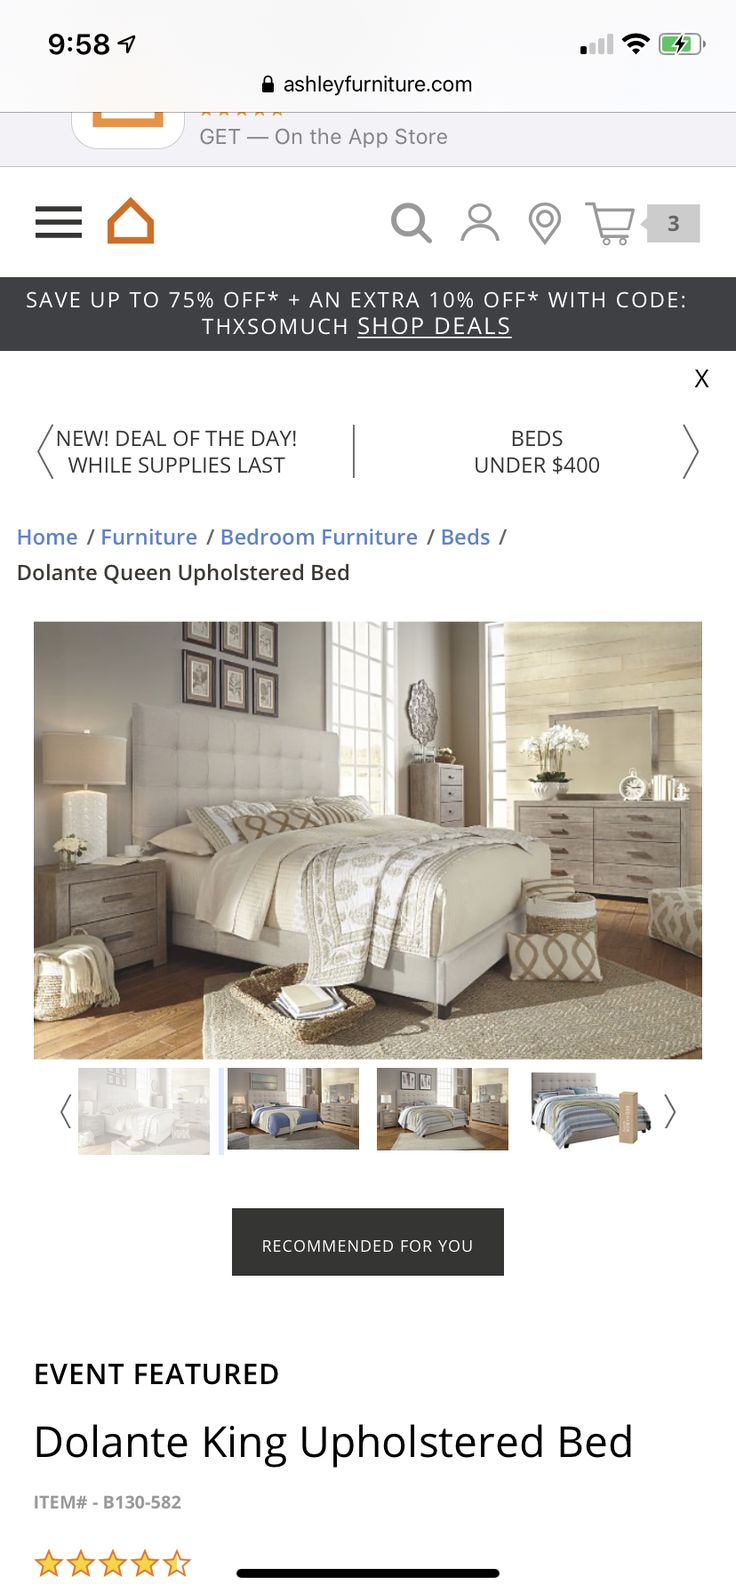 Pin By Emily Rone On Searching For Home Sweet Home Home Sweet Home Home Decor